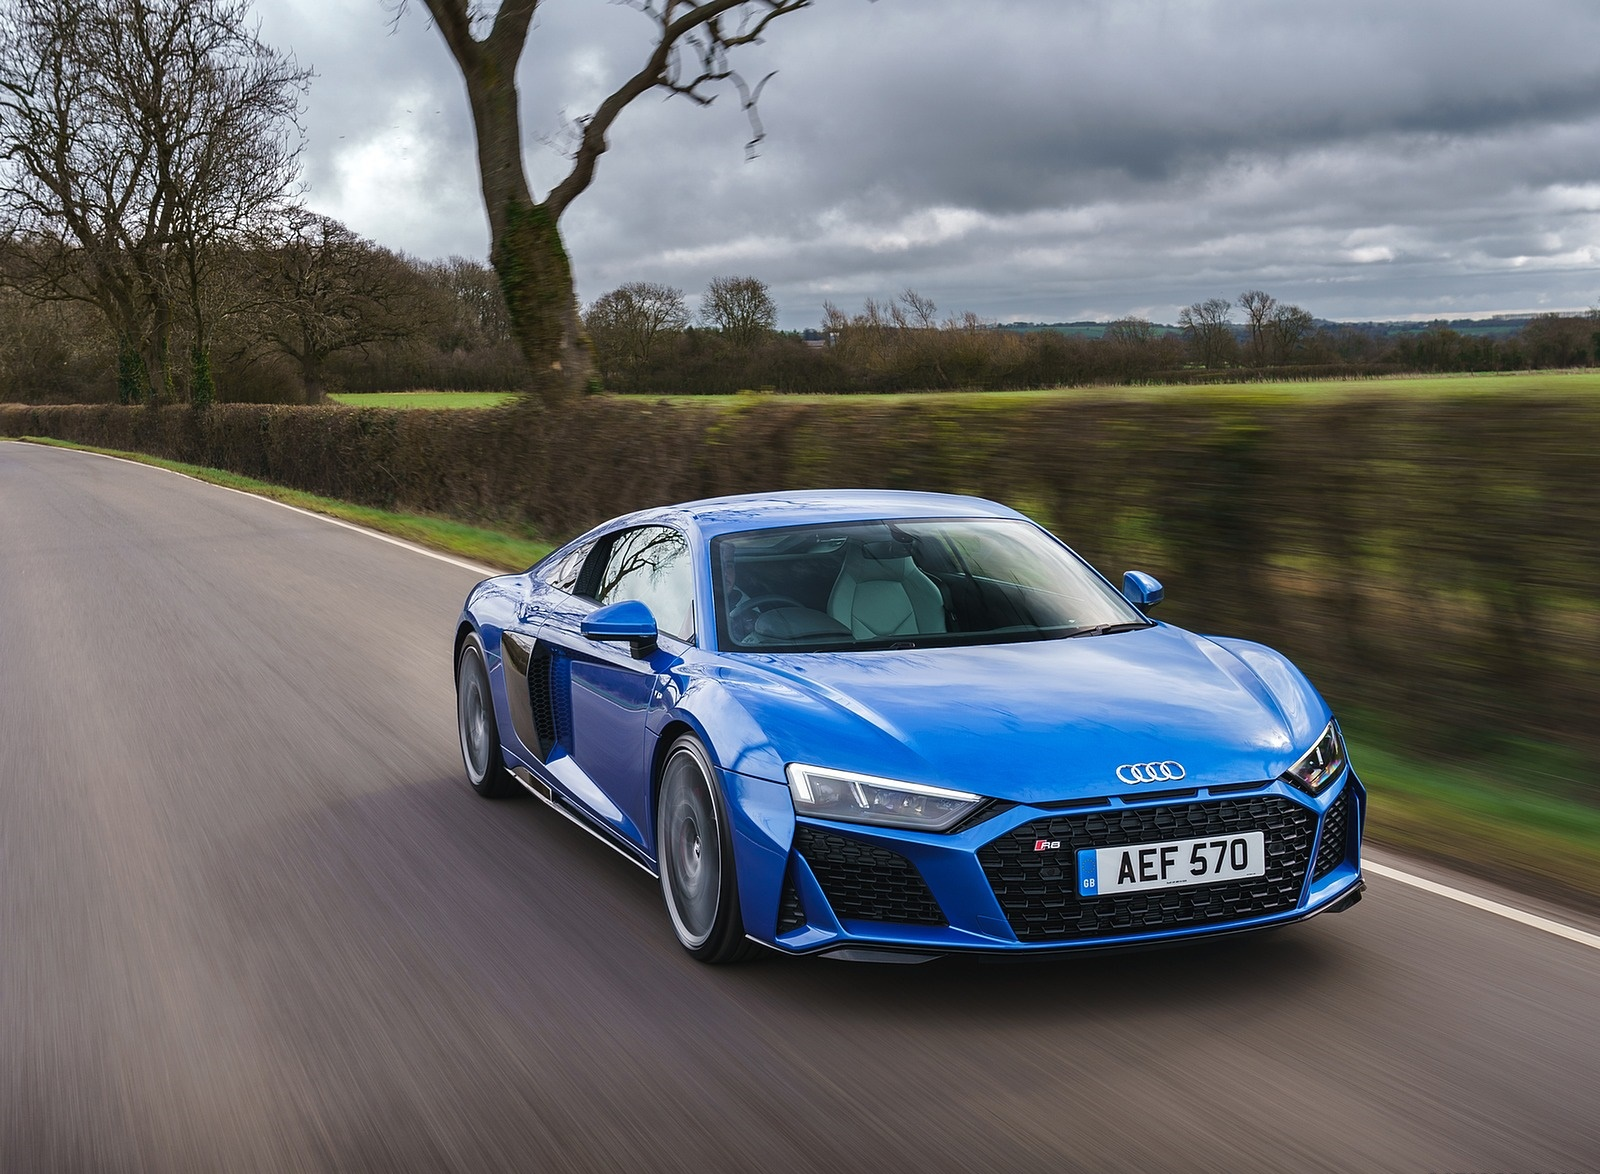 2019 Audi R8 V10 Coupe quattro (UK-Spec) Front Three-Quarter Wallpaper (13)